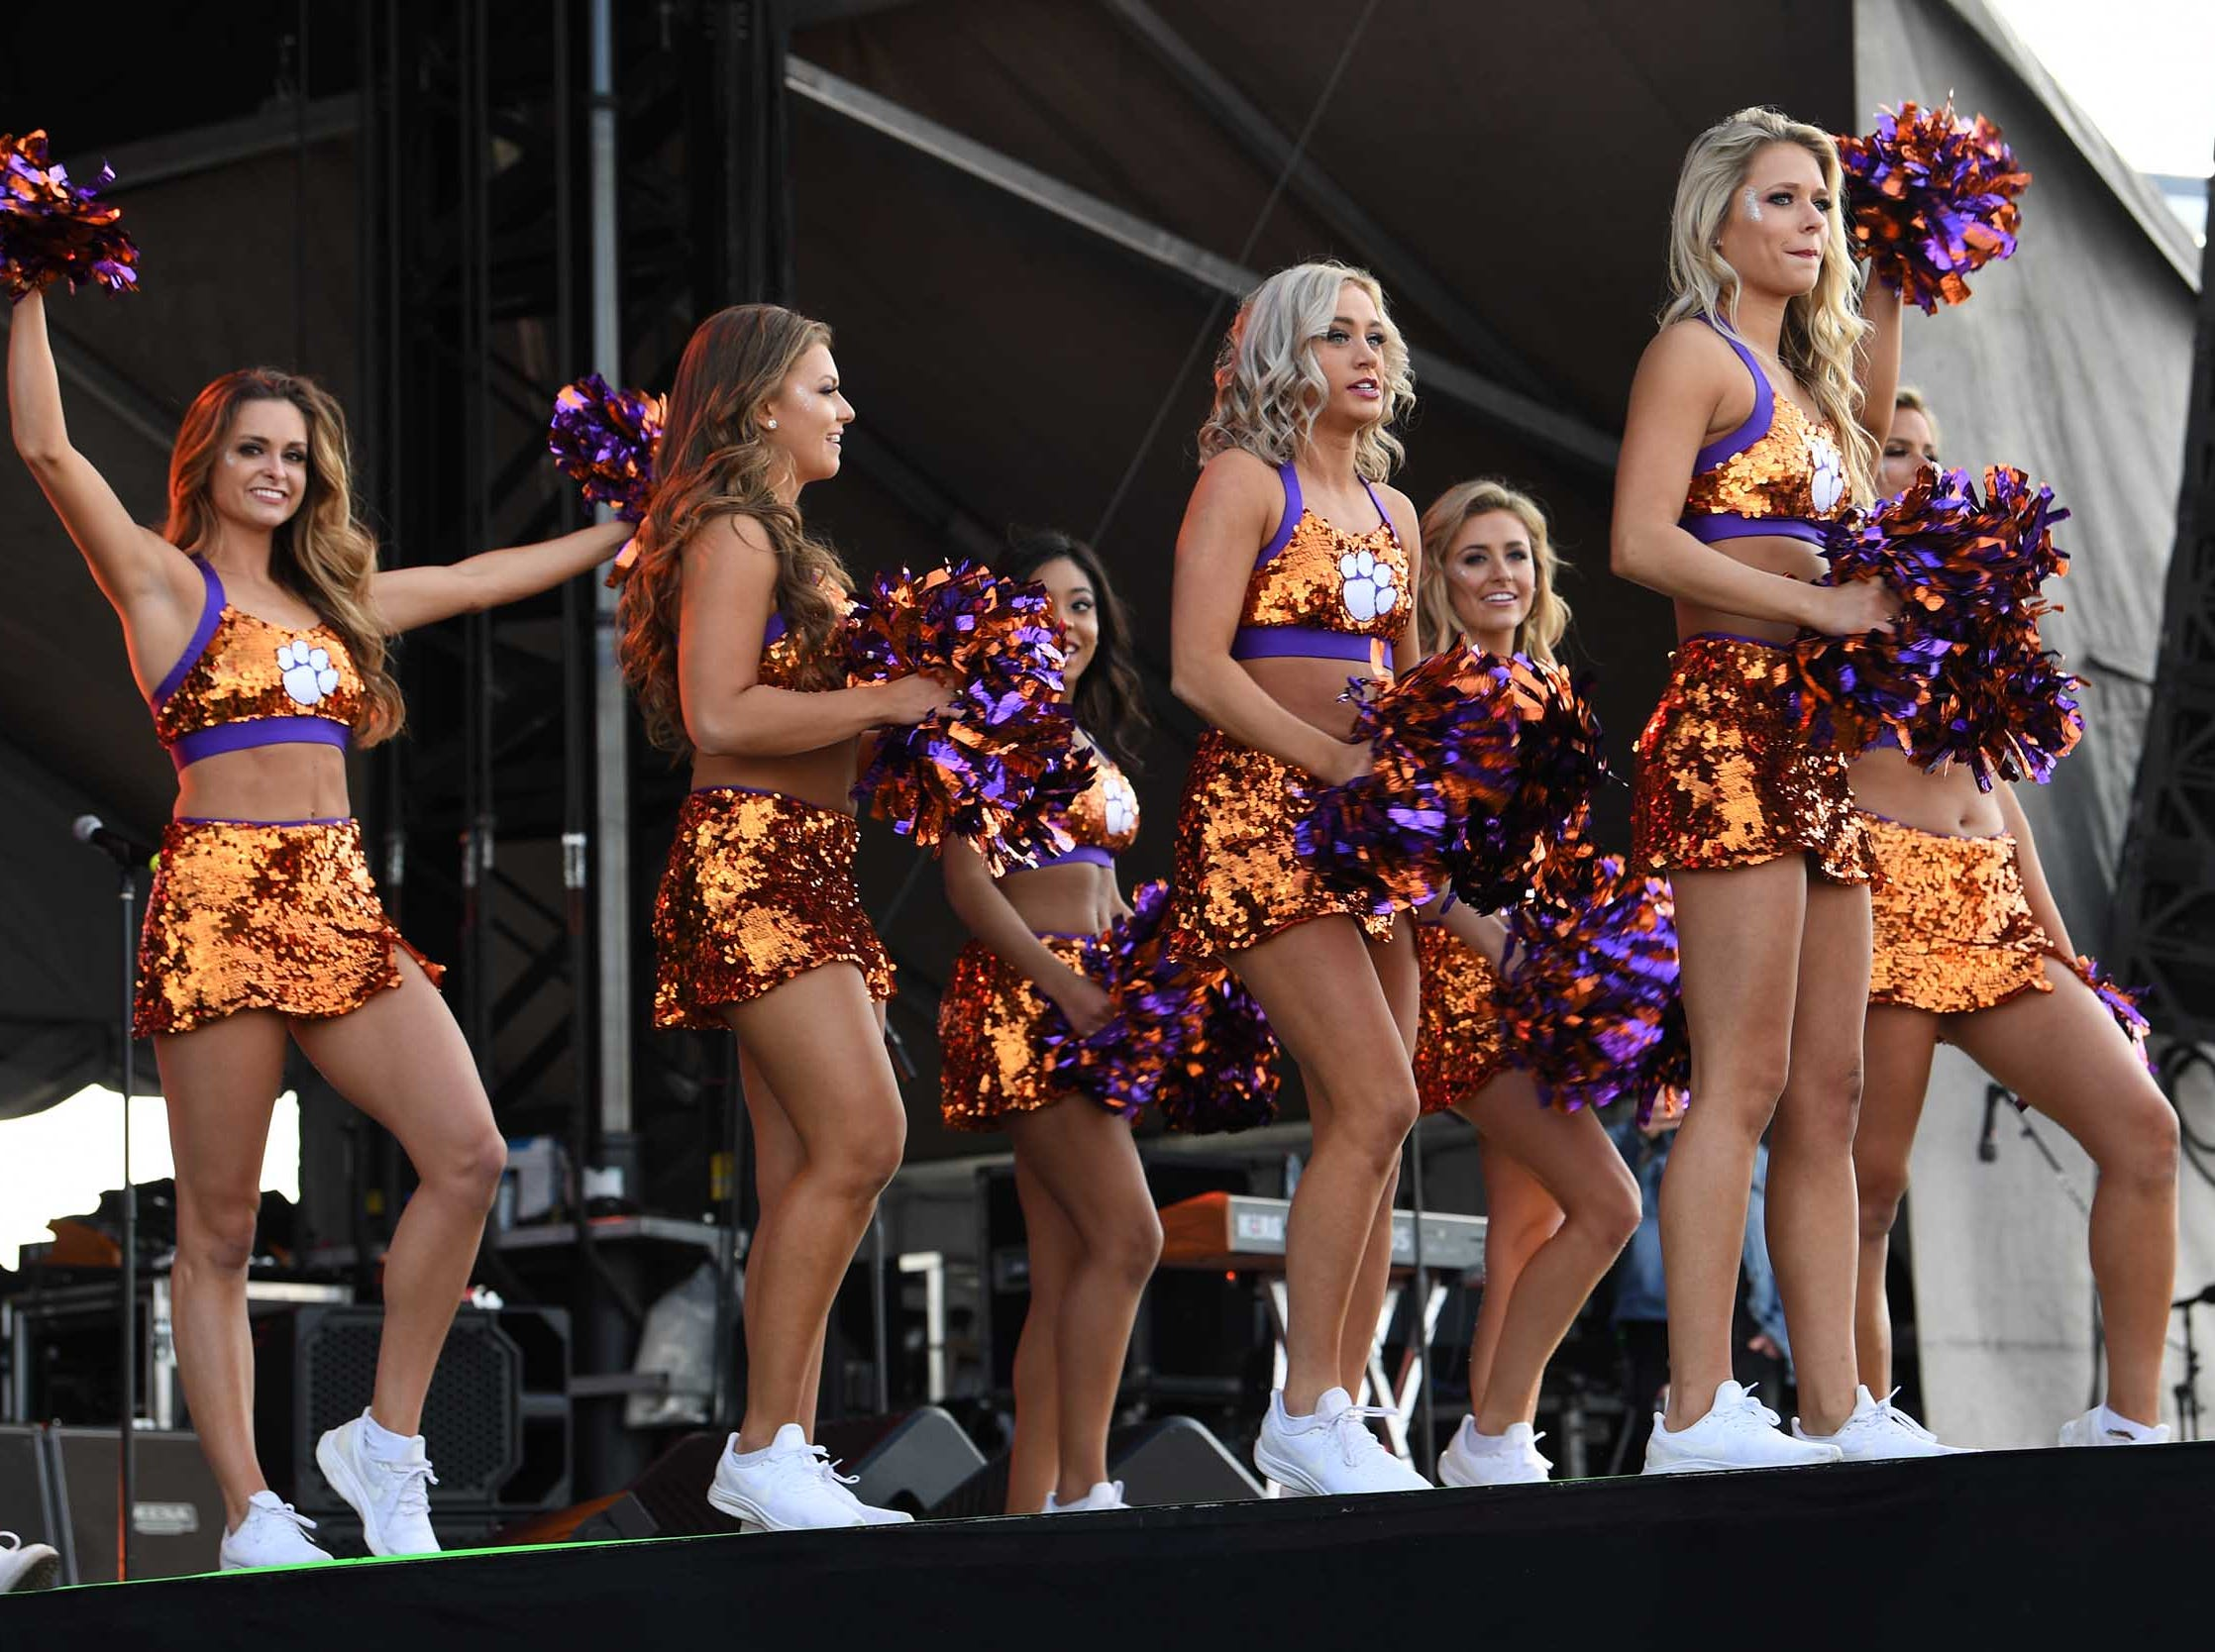 Clemson Rally Cats preform with Tiger Band, cheerleaders, Tiger Dancers, twirlers, and fans at the College Football Championship Playoff Tailgate outside Levi's Stadium in Santa Clara, California Monday, January 7, 2019.